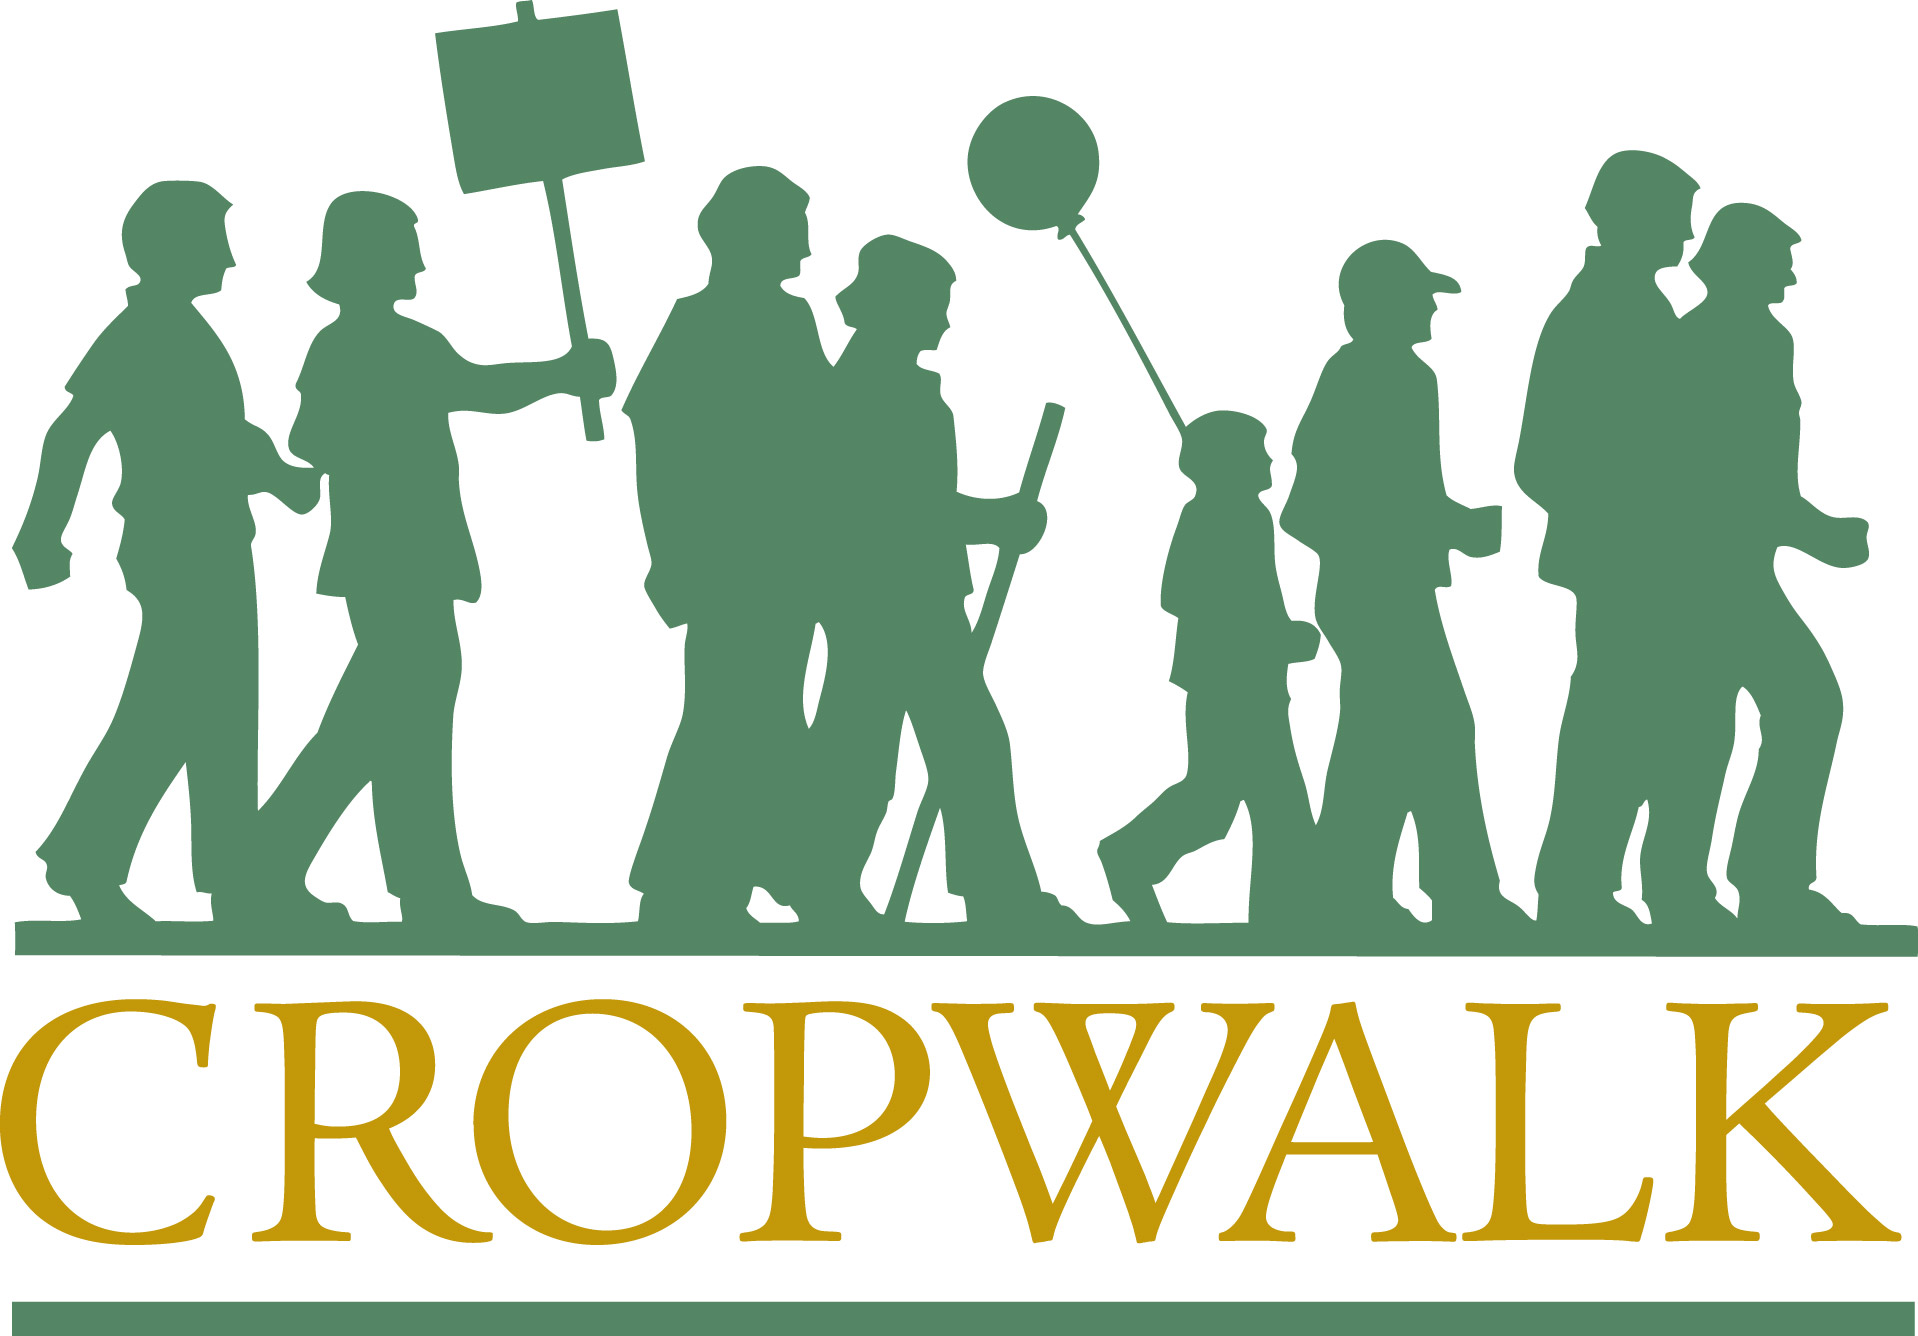 Crop walk clipart.